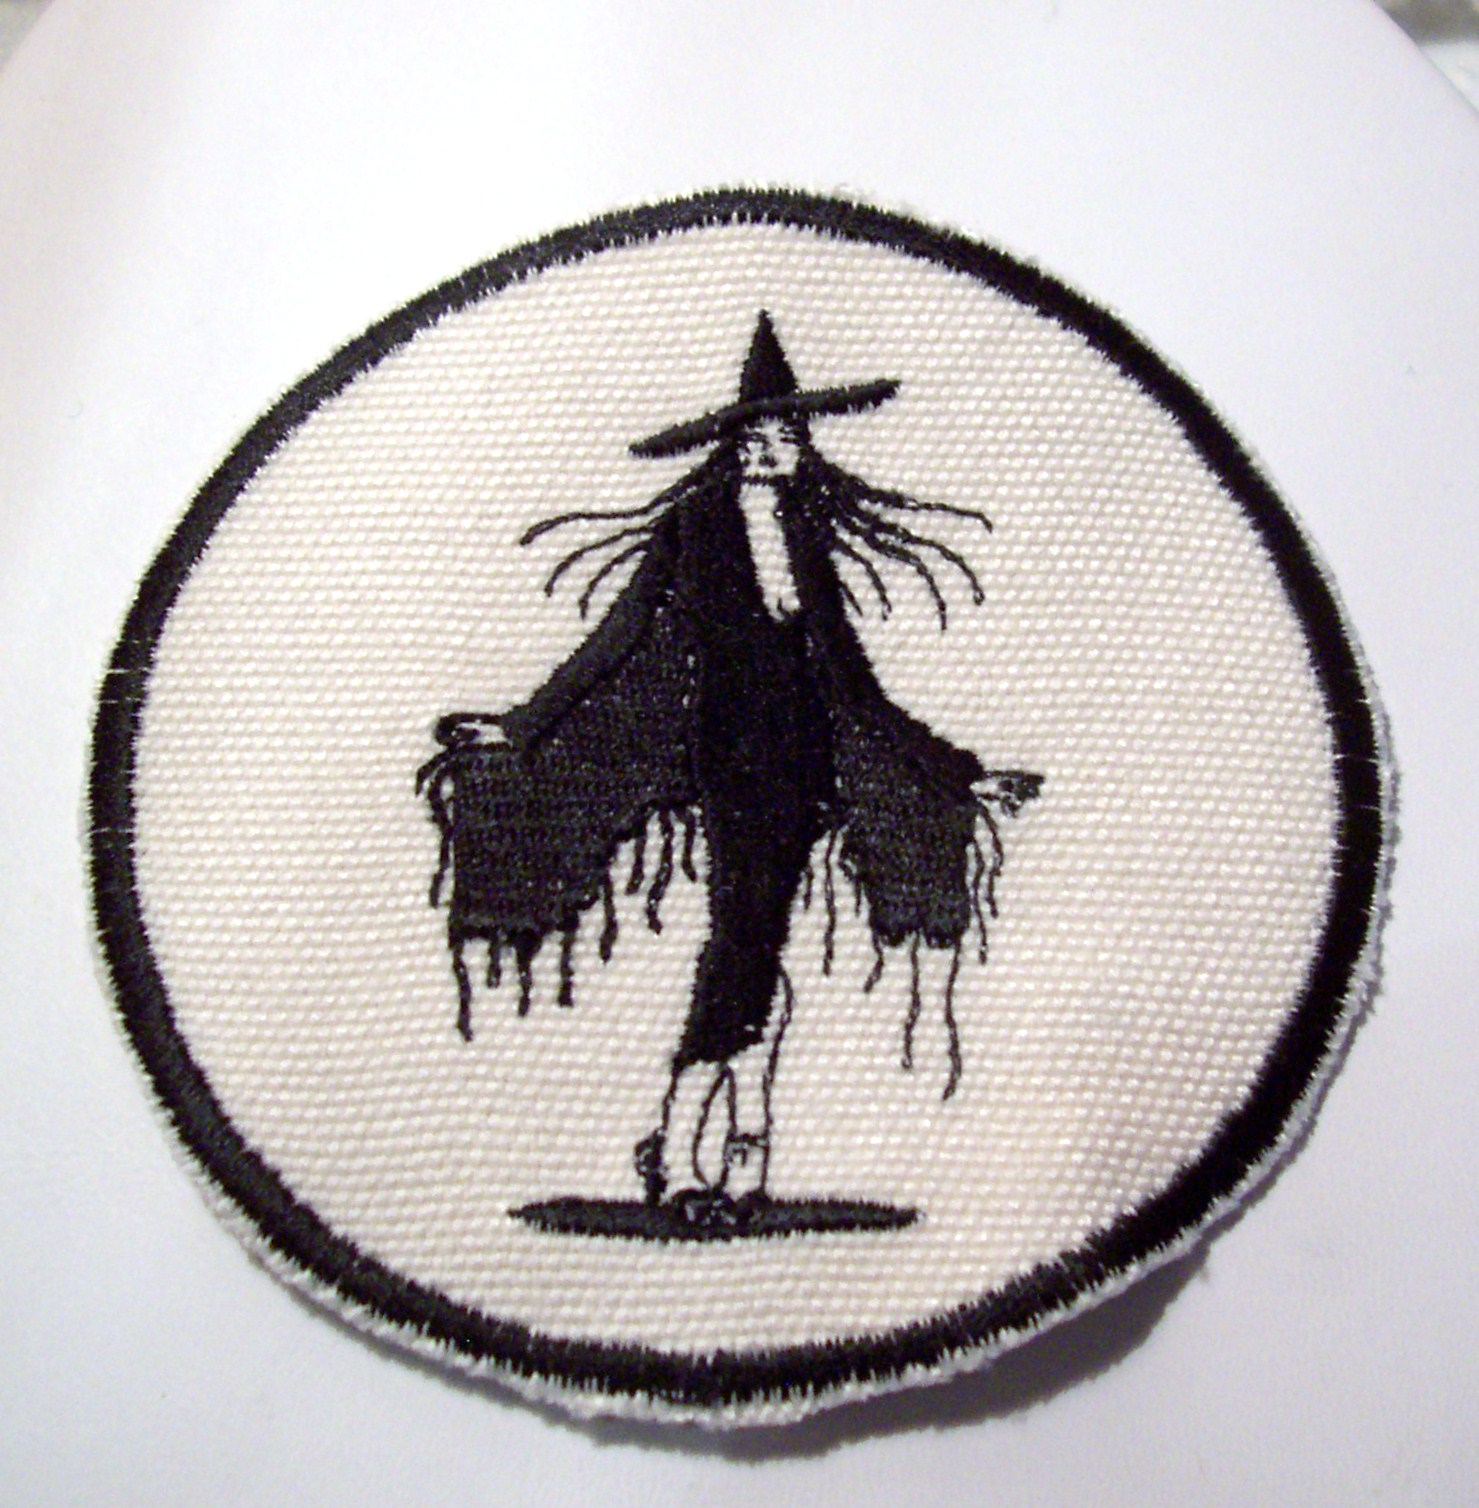 embroidered_sexy_wicked_witch_sew_iron_on_patch_badge_patches_2.jpg